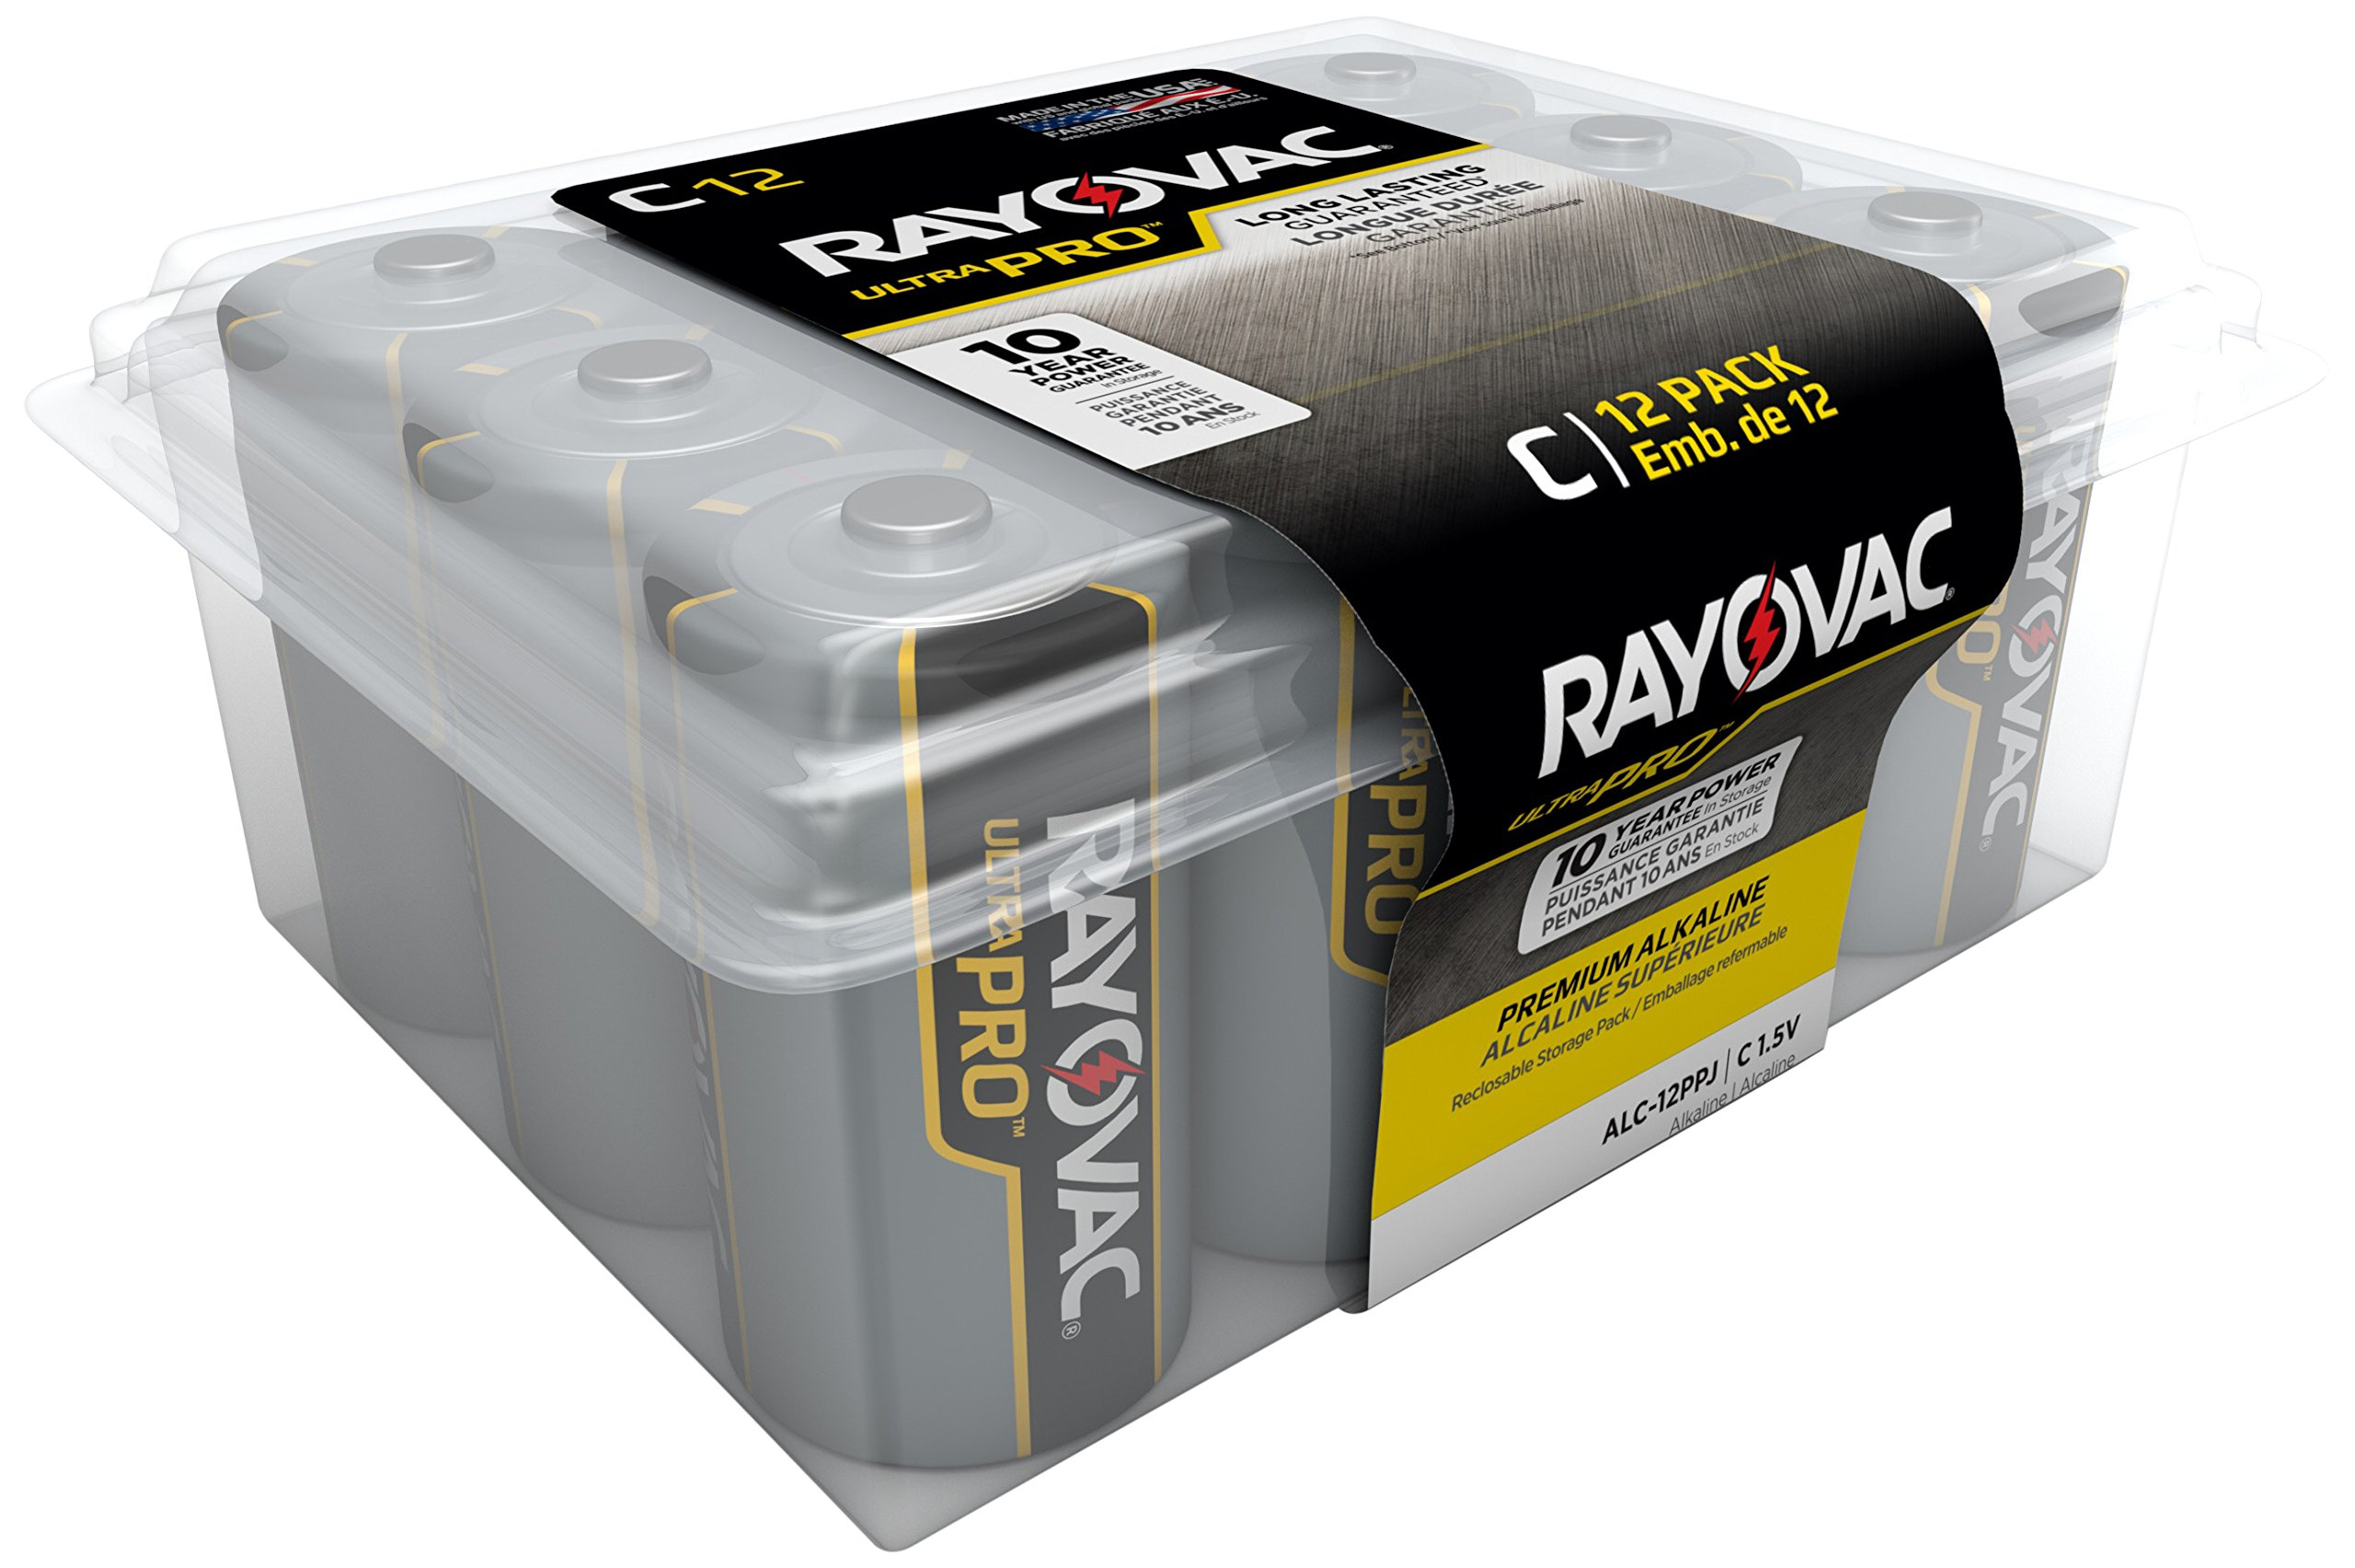 RAYOVAC C Ultra Pro Alkaline Batteries, 12-Pack with Recloseable Lid, ALC-12PPJ